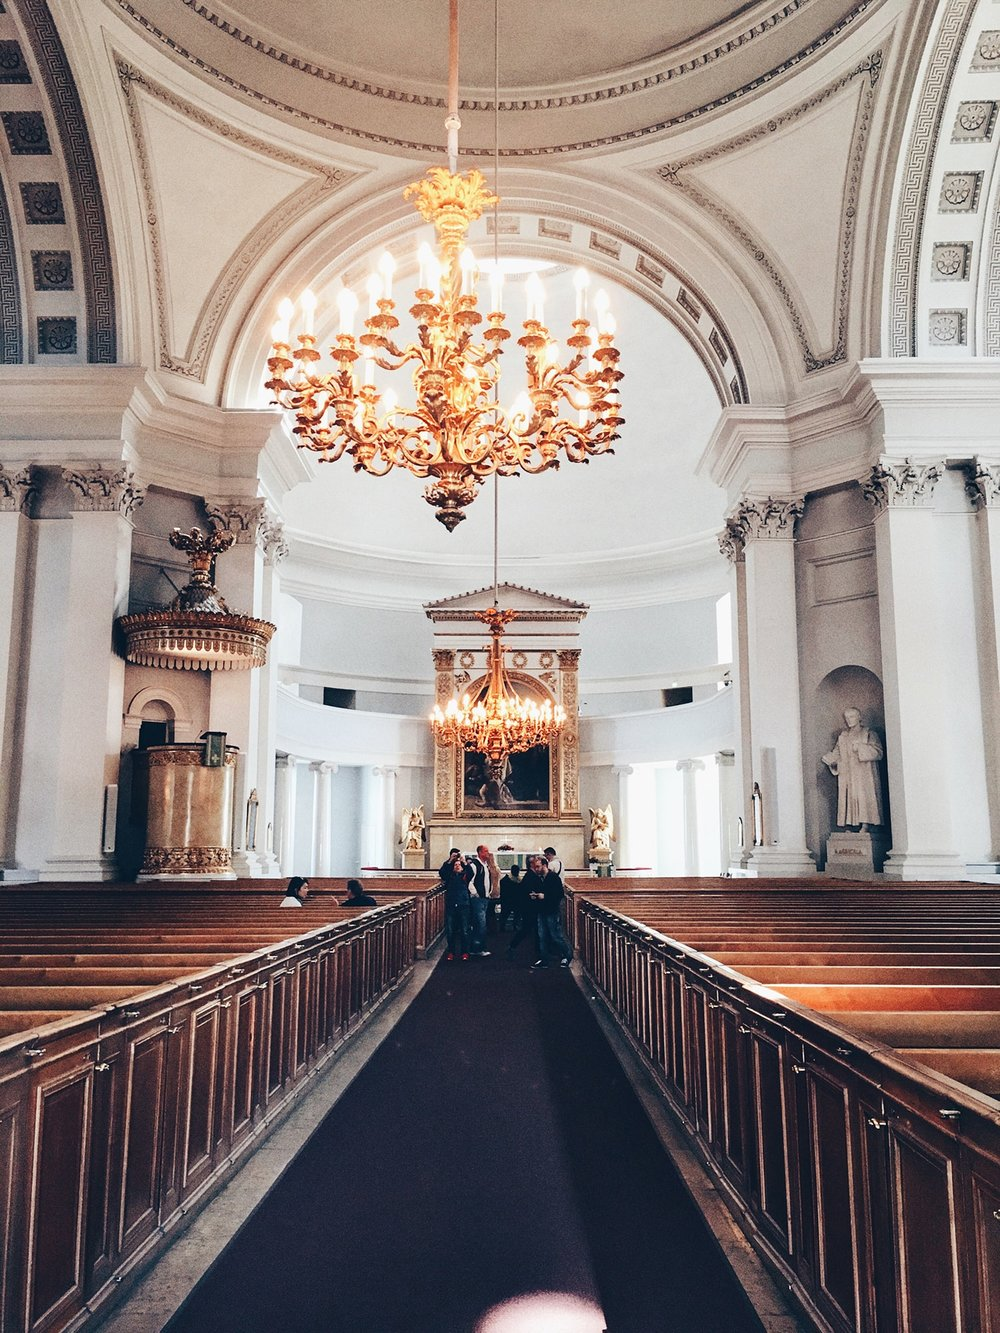 The interiors of Helsinki Cathedral (Helsinki, Finland)